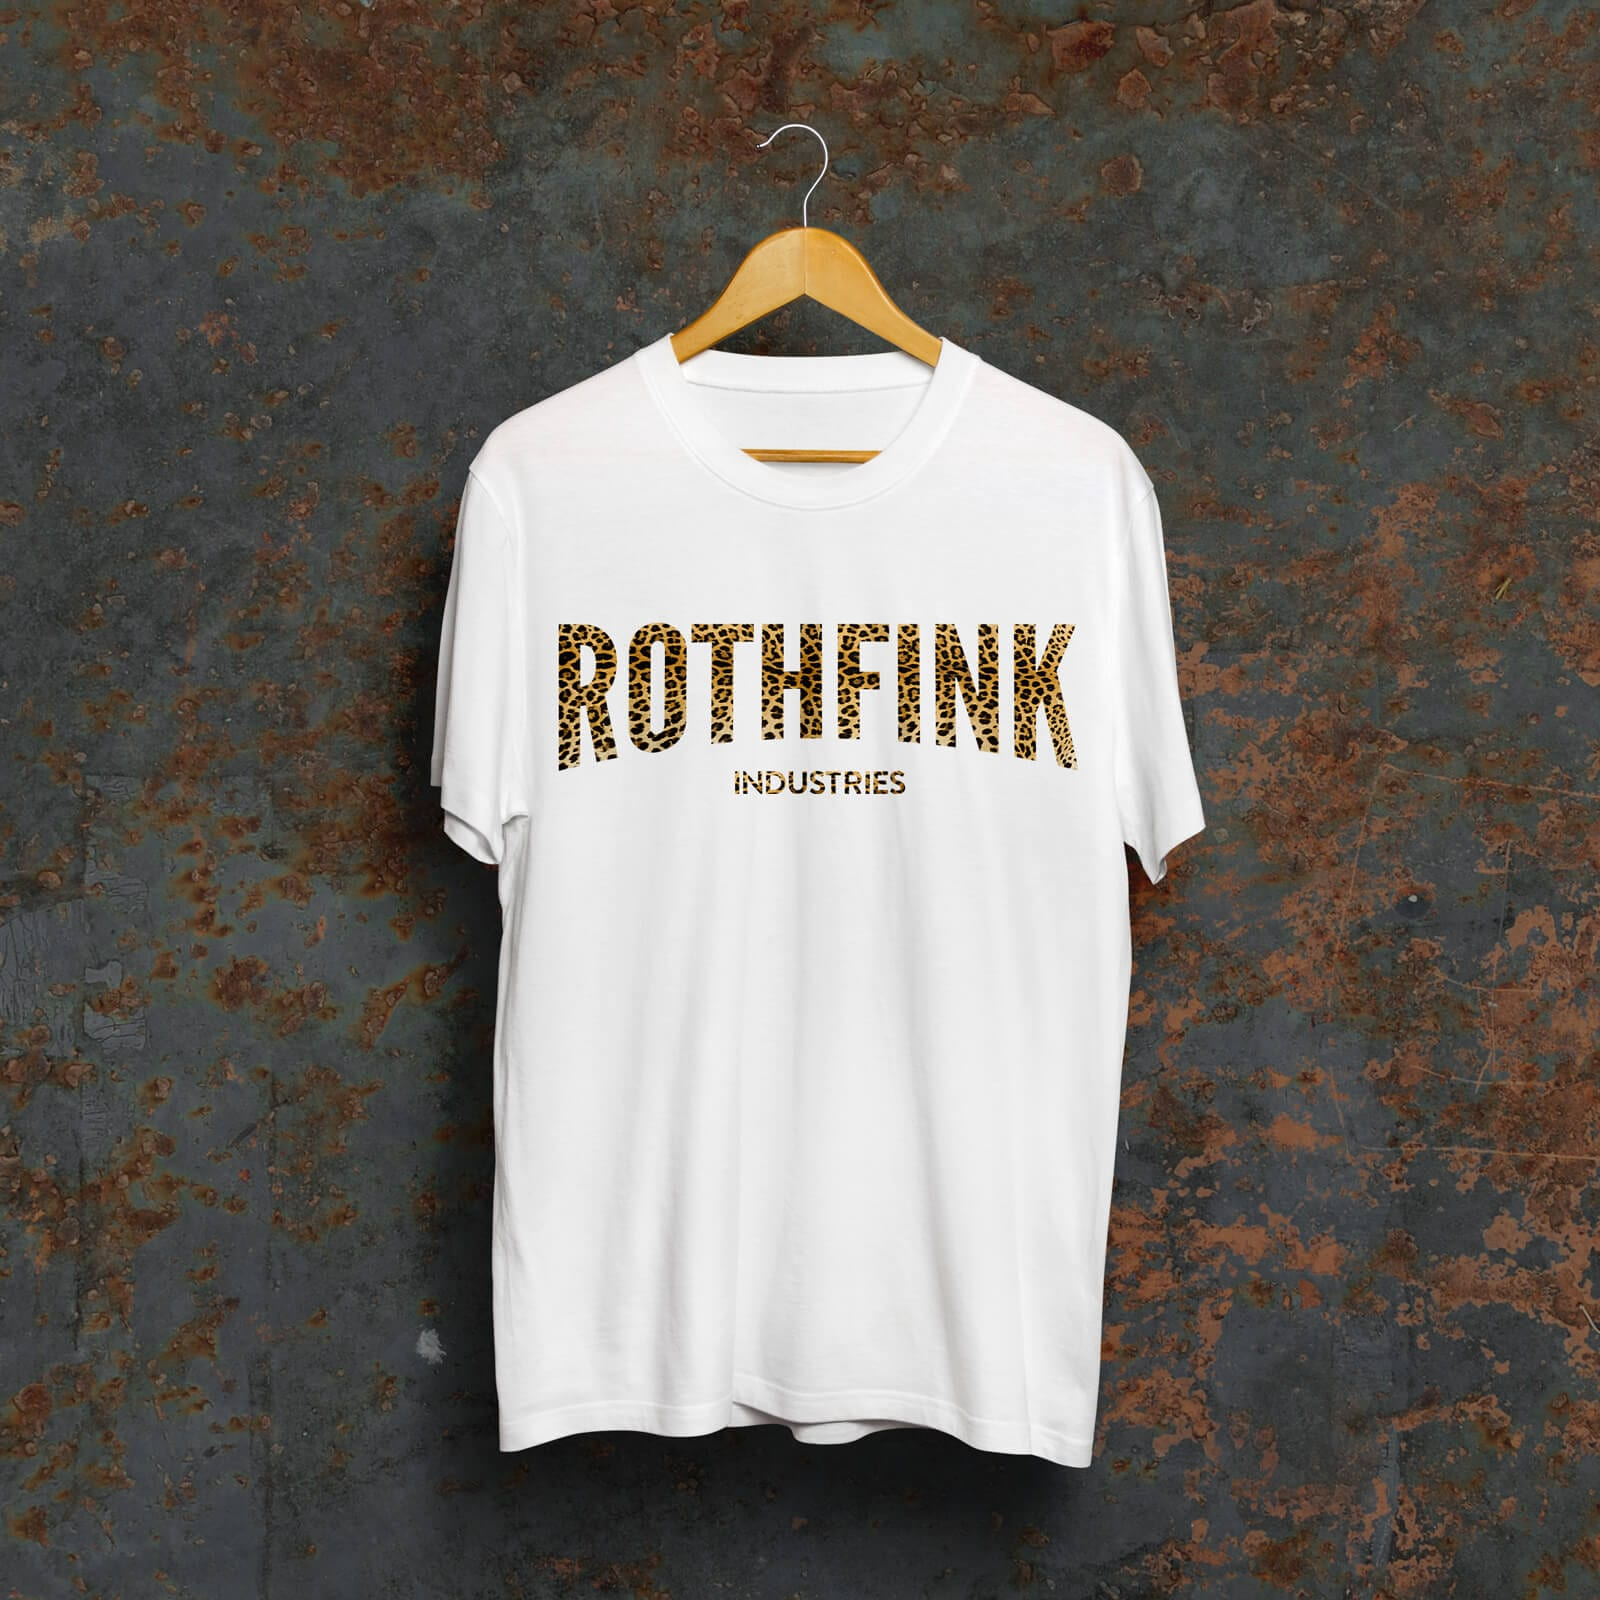 New Rothfink Industries Clothing Range for 2017